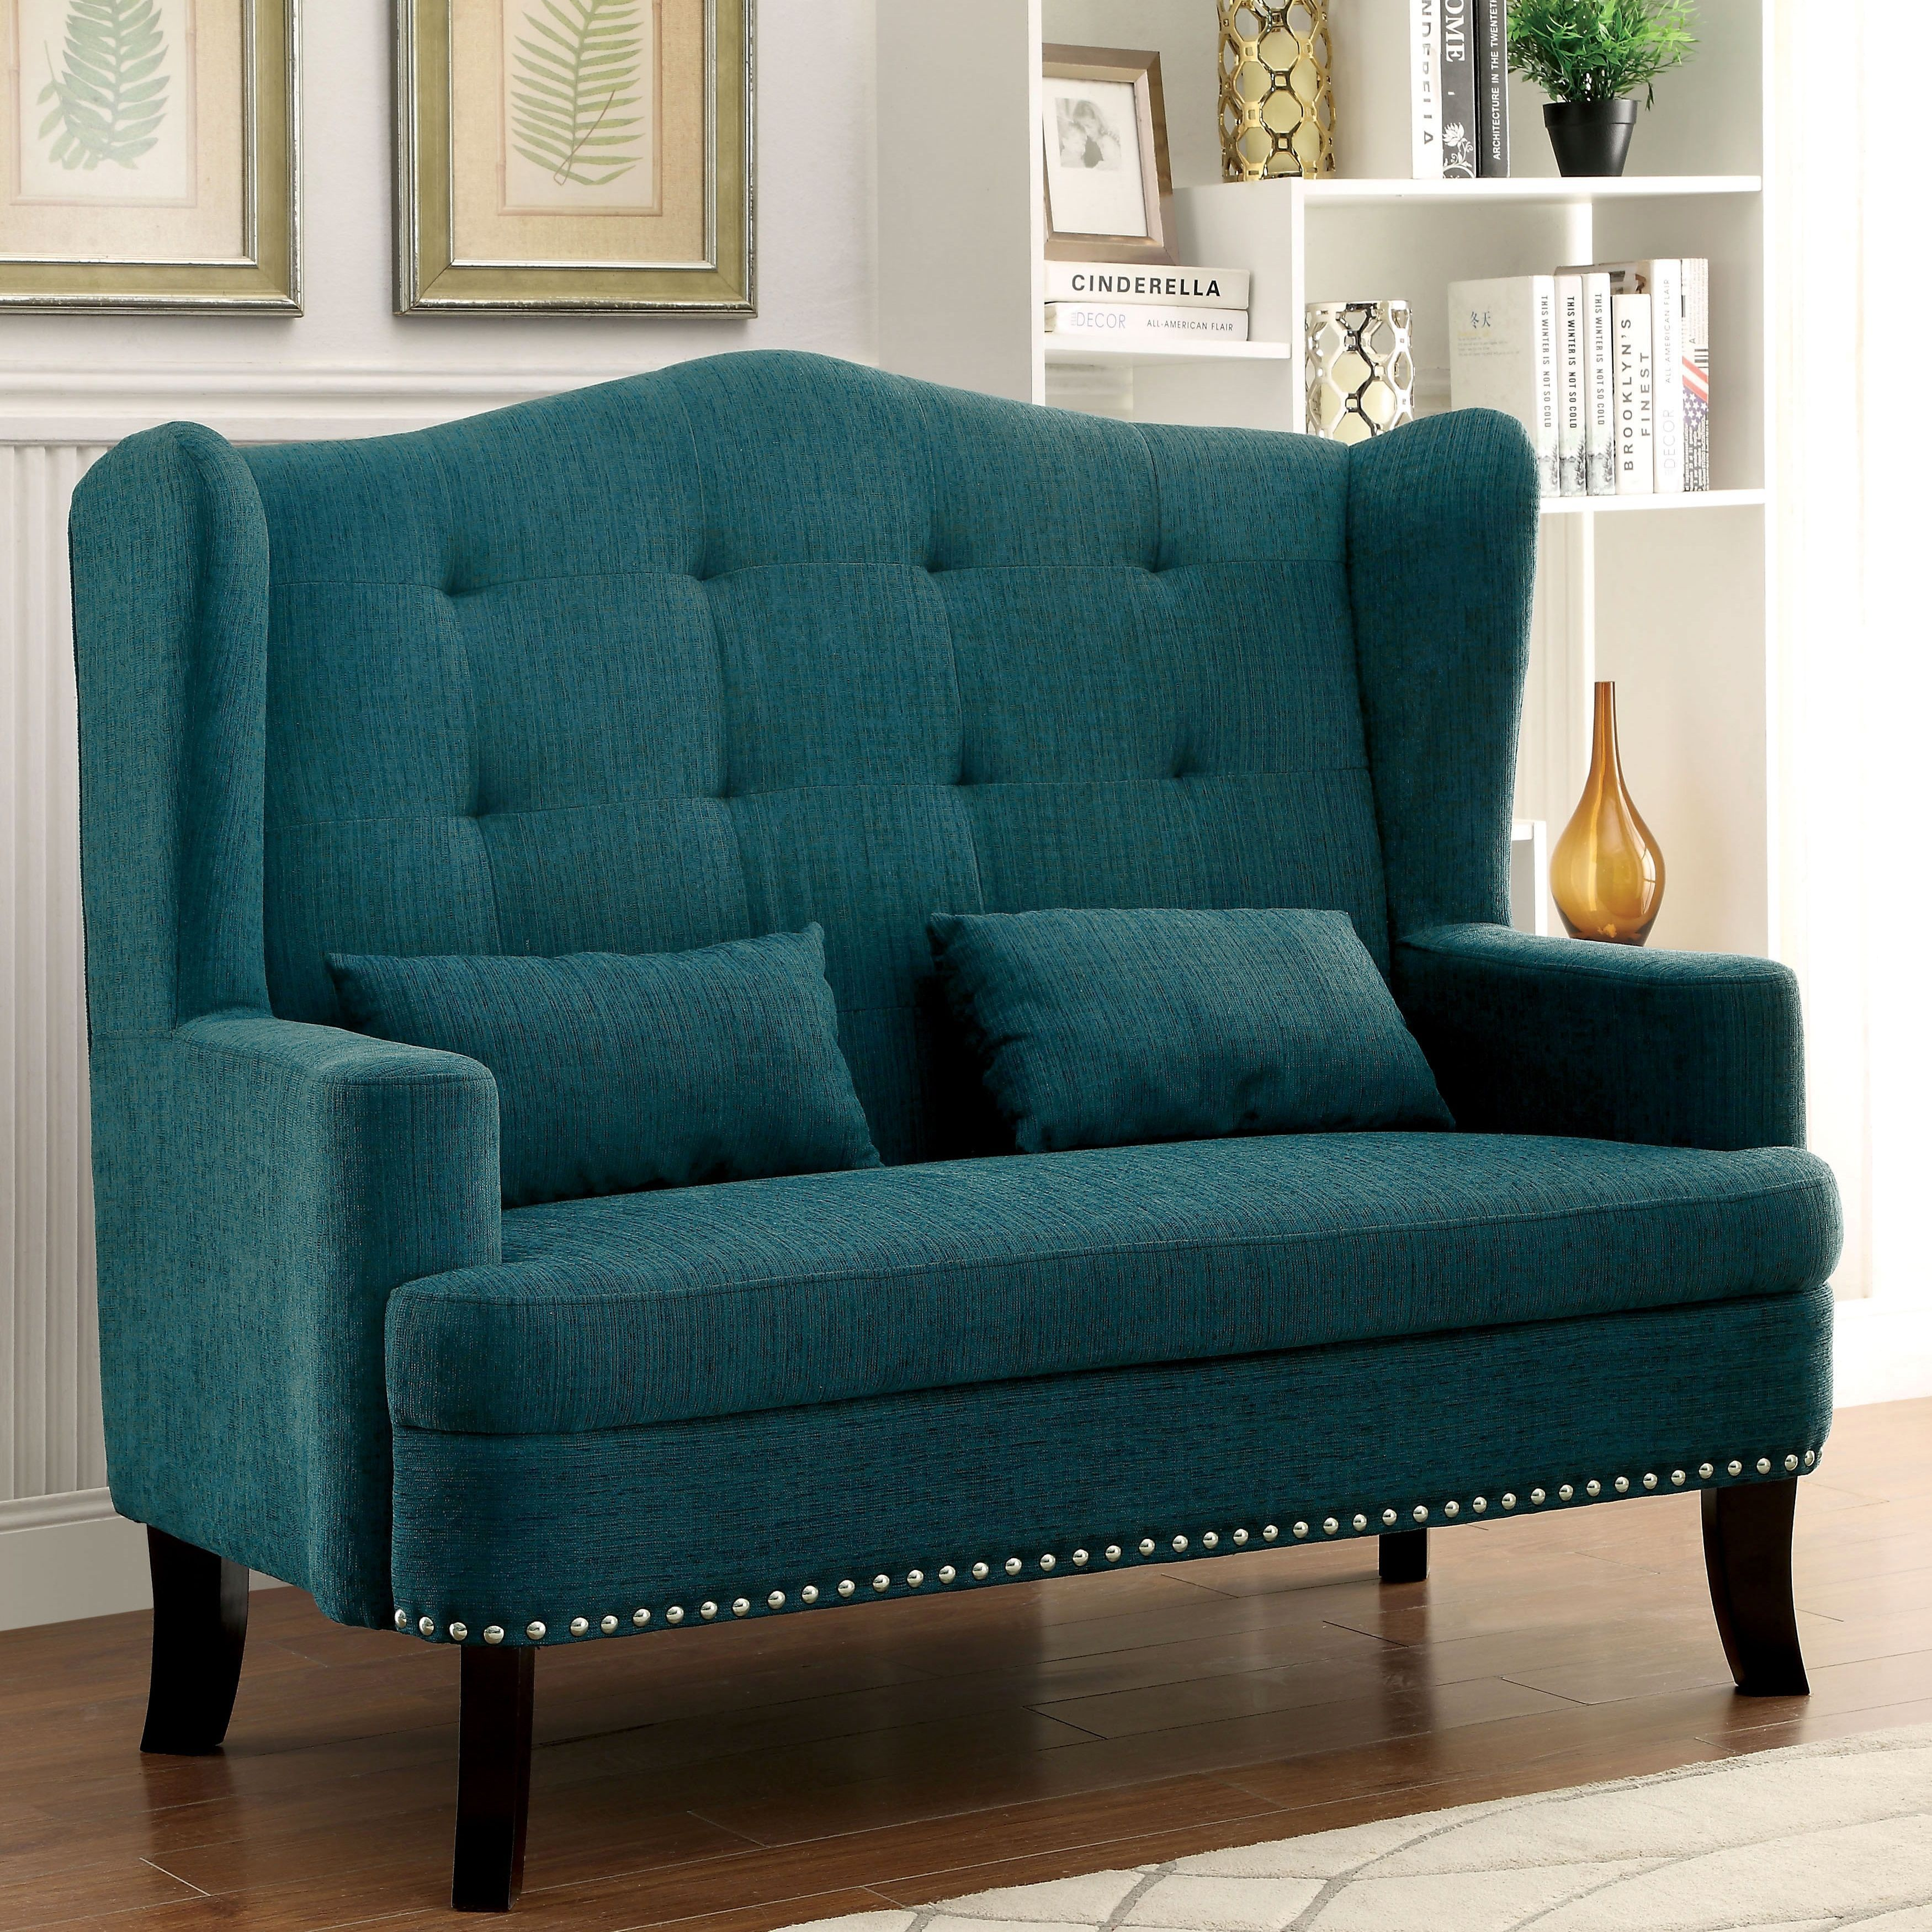 Astounding Furniture Of America Vierre Romantic Wingback Tufted Pabps2019 Chair Design Images Pabps2019Com